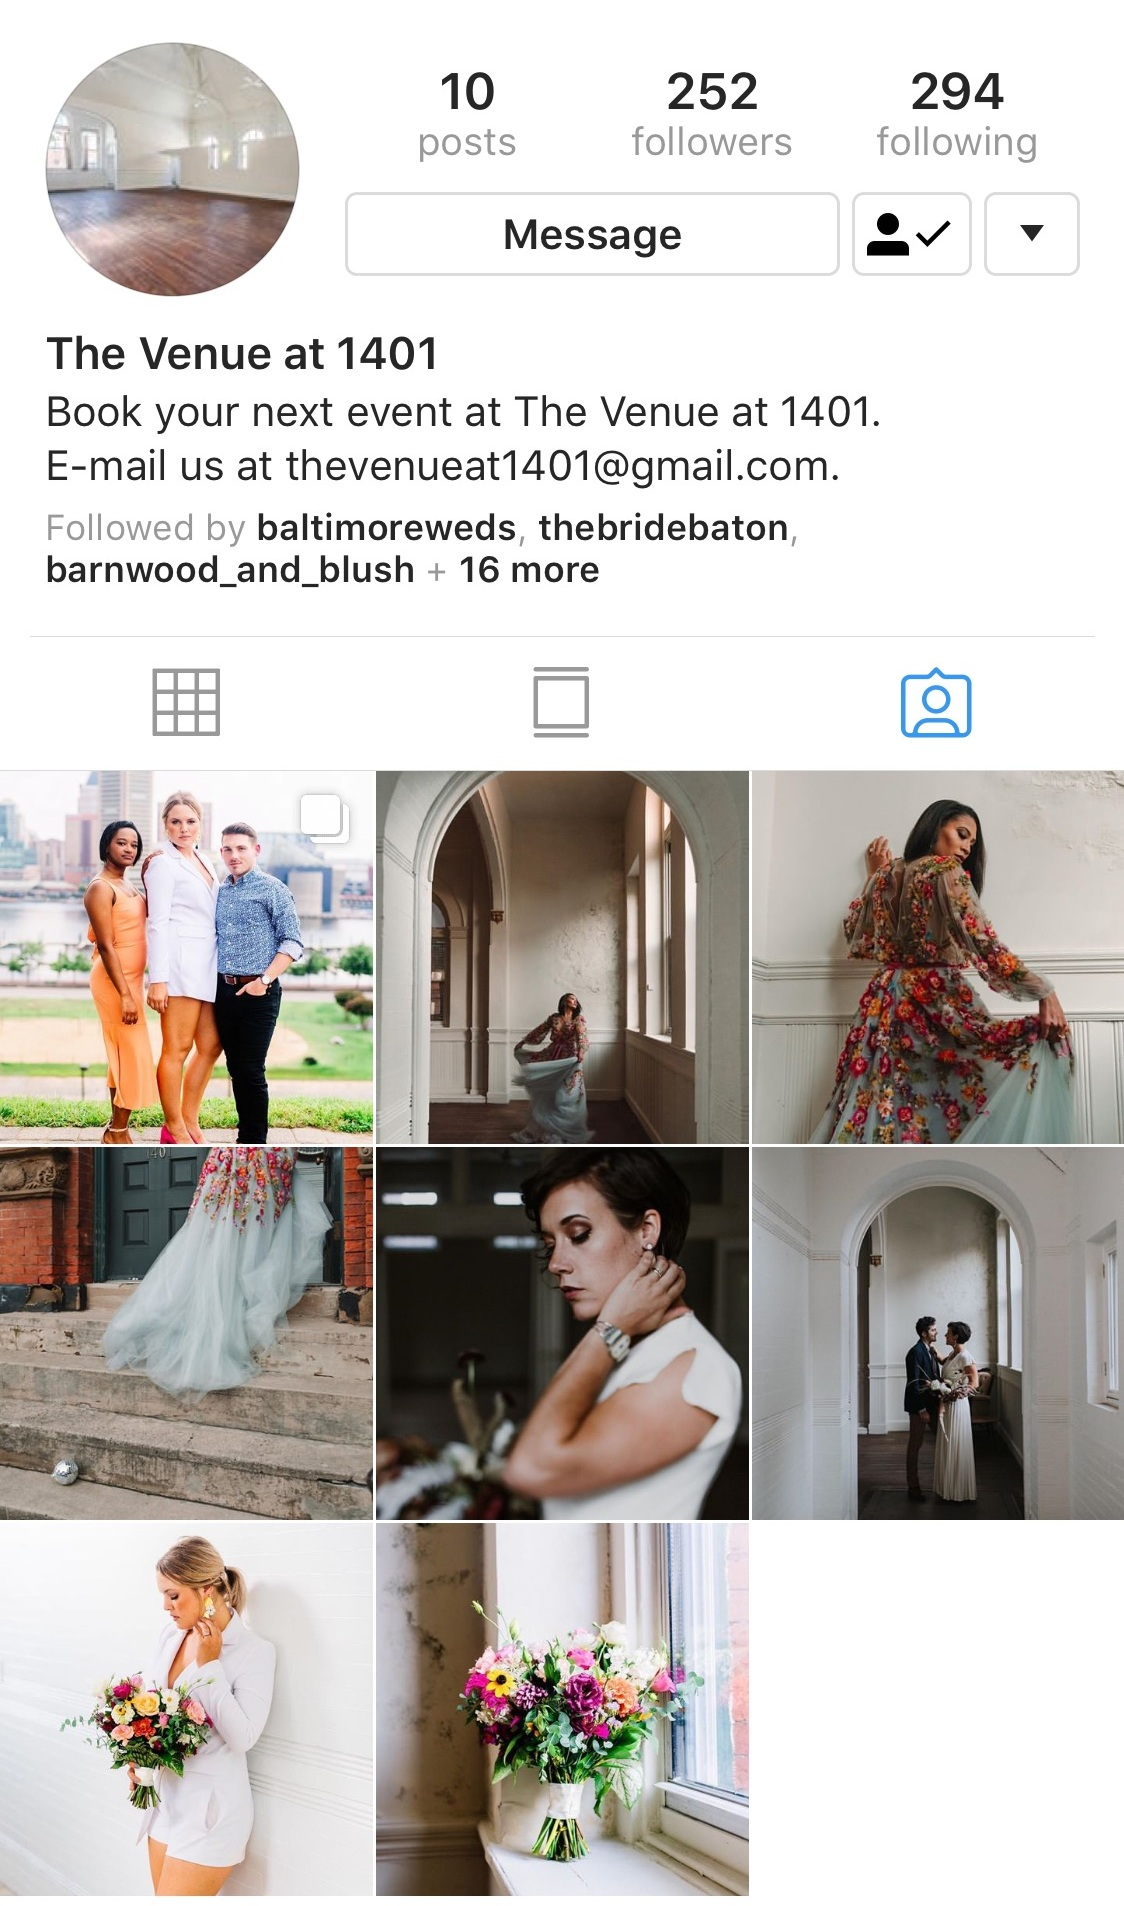 Search tagged photos - In the venue's bio, click tagged photos